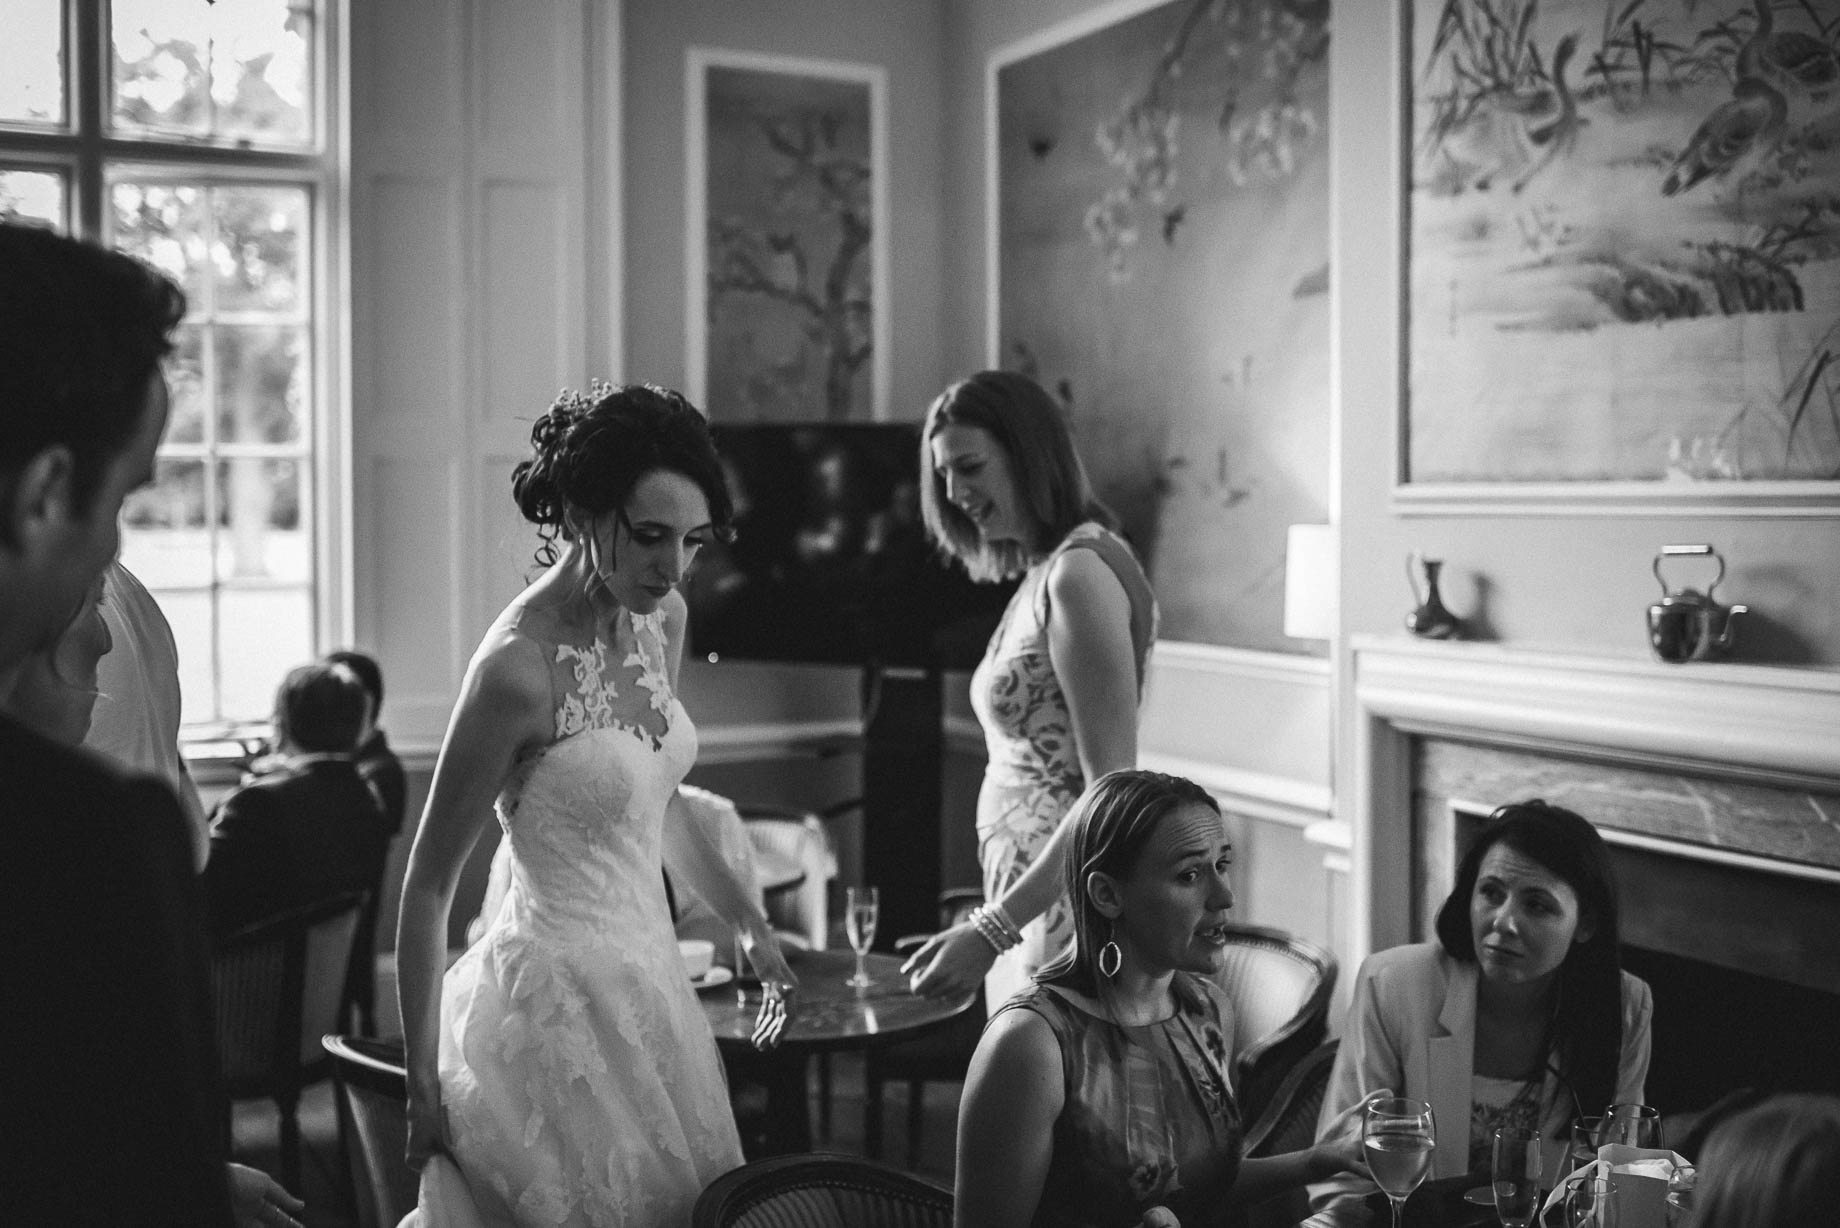 Hertfordshire wedding photography - Sarah and Stephen by Guy Collier Photography (153 of 161)